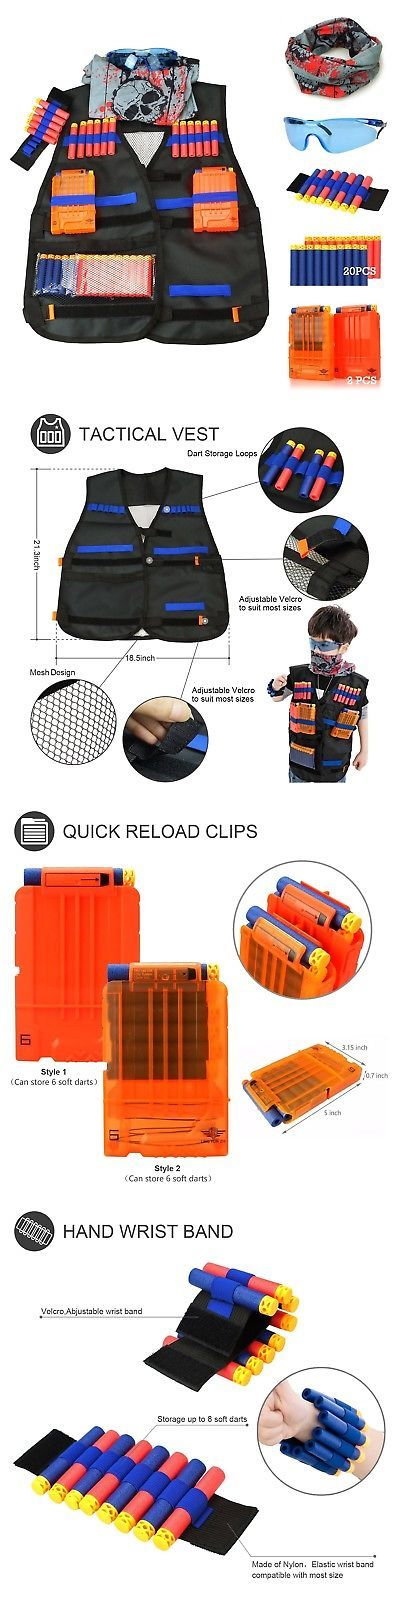 Dart Guns and Soft Darts 158749: Tactical Vest Kit For Nerf Guns N-Strike Elite Series Free Shipping, New -> BUY IT NOW ONLY: $37.86 on eBay!